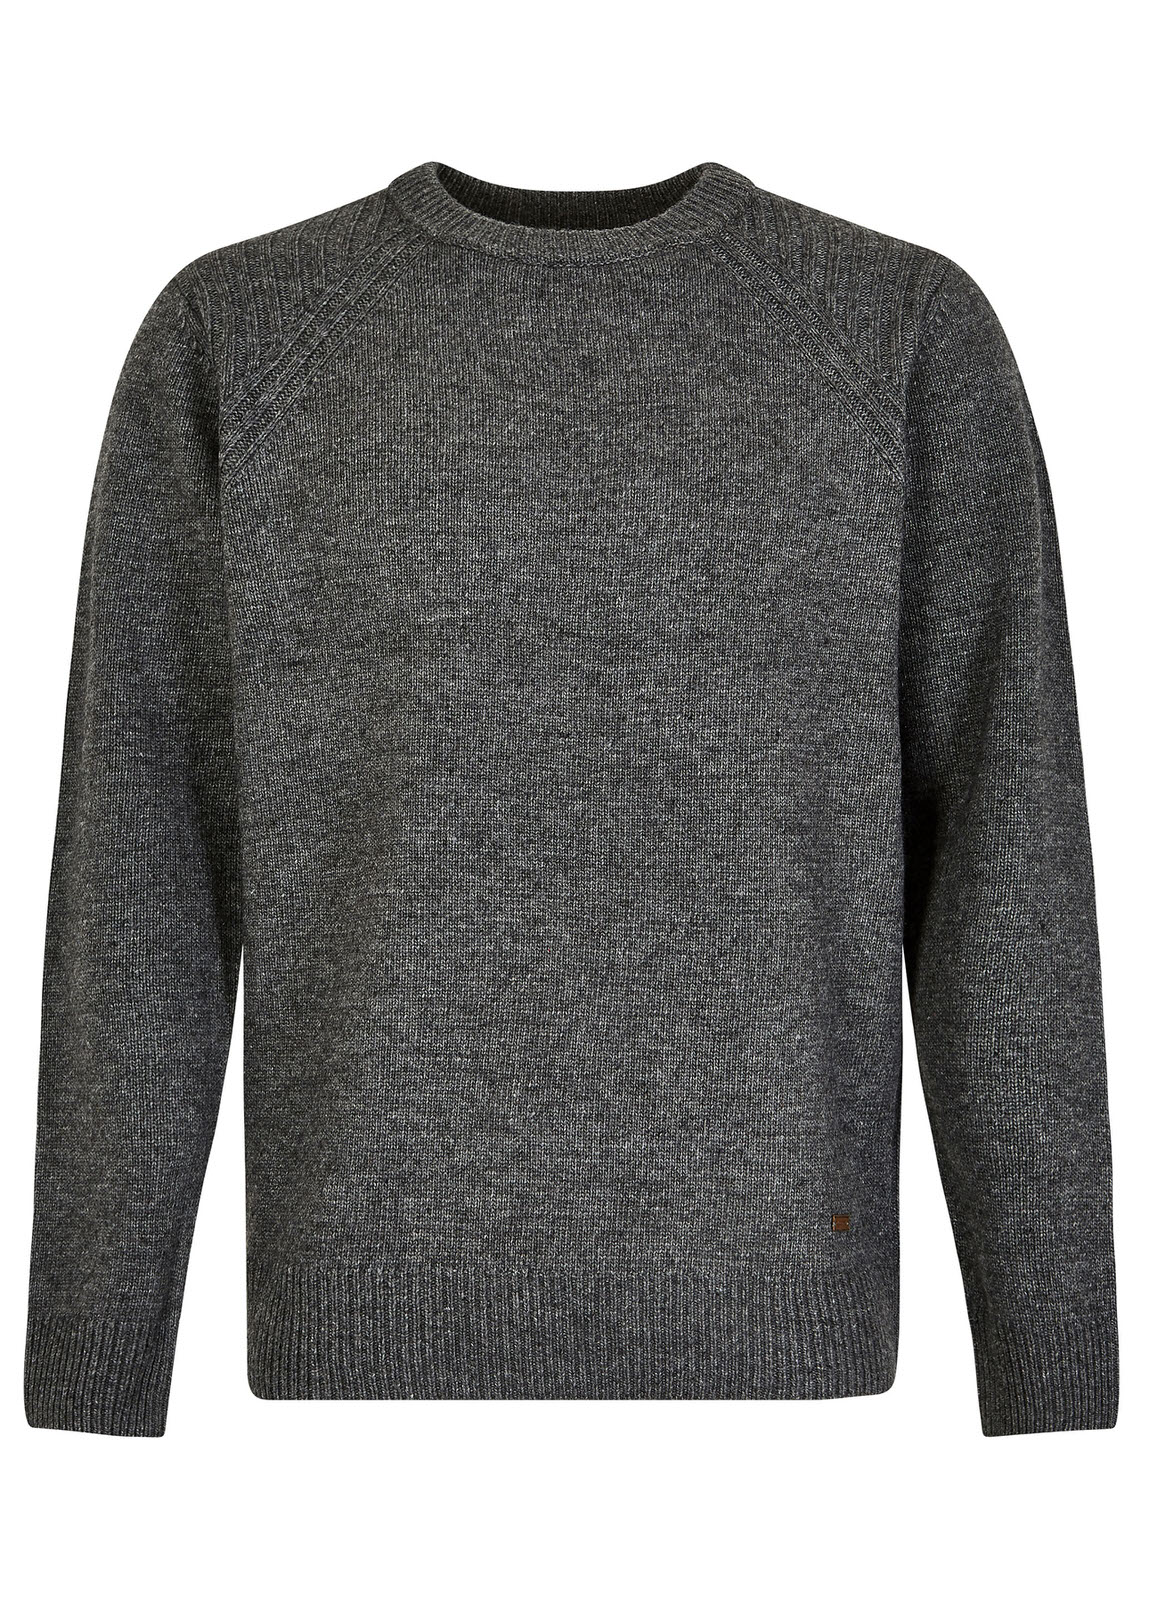 Kenny_Sweater_Light_Grey_Image_1